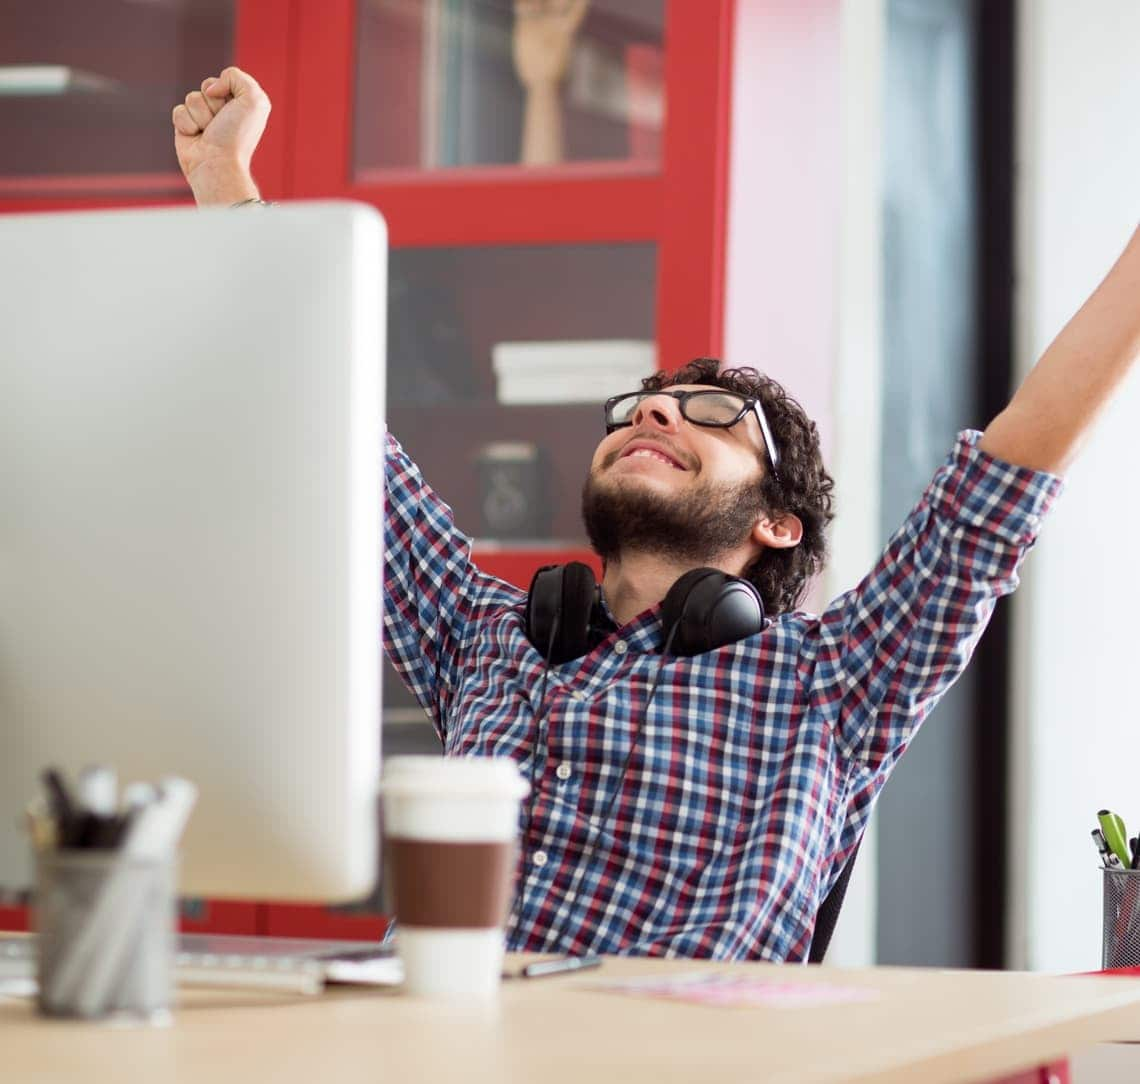 Man happy with hands in the air at computer